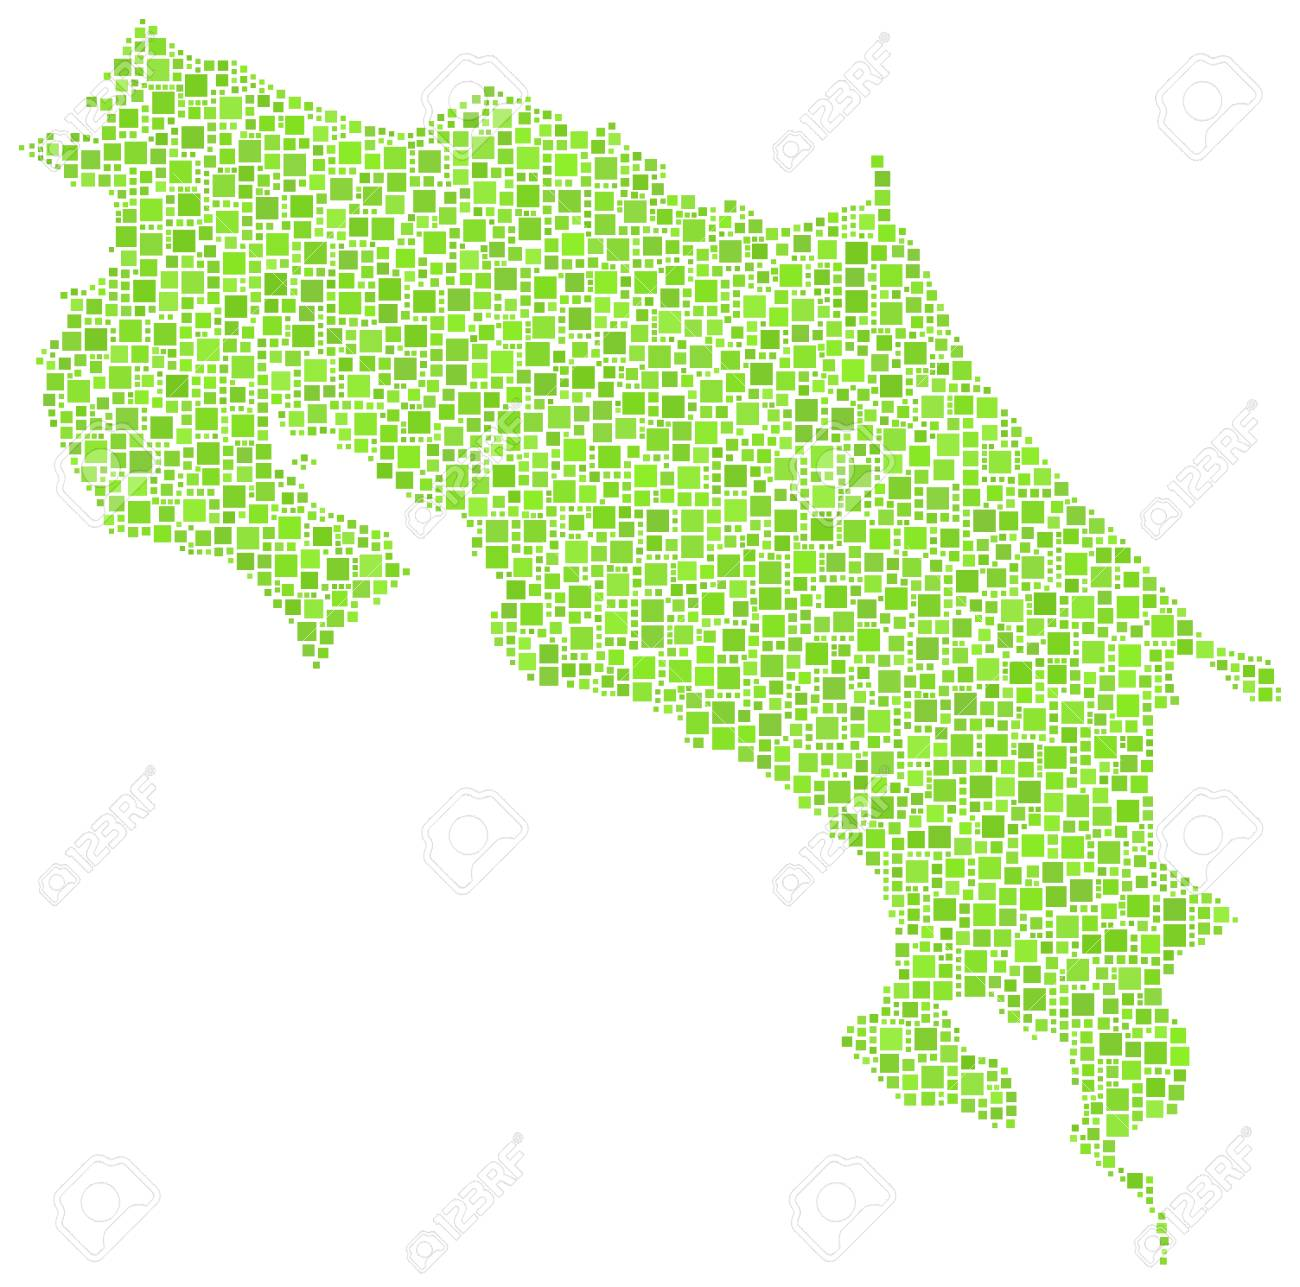 Costa Rica Usa Map.Map Of Costa Rica America In A Mosaic Of Green Squares Royalty